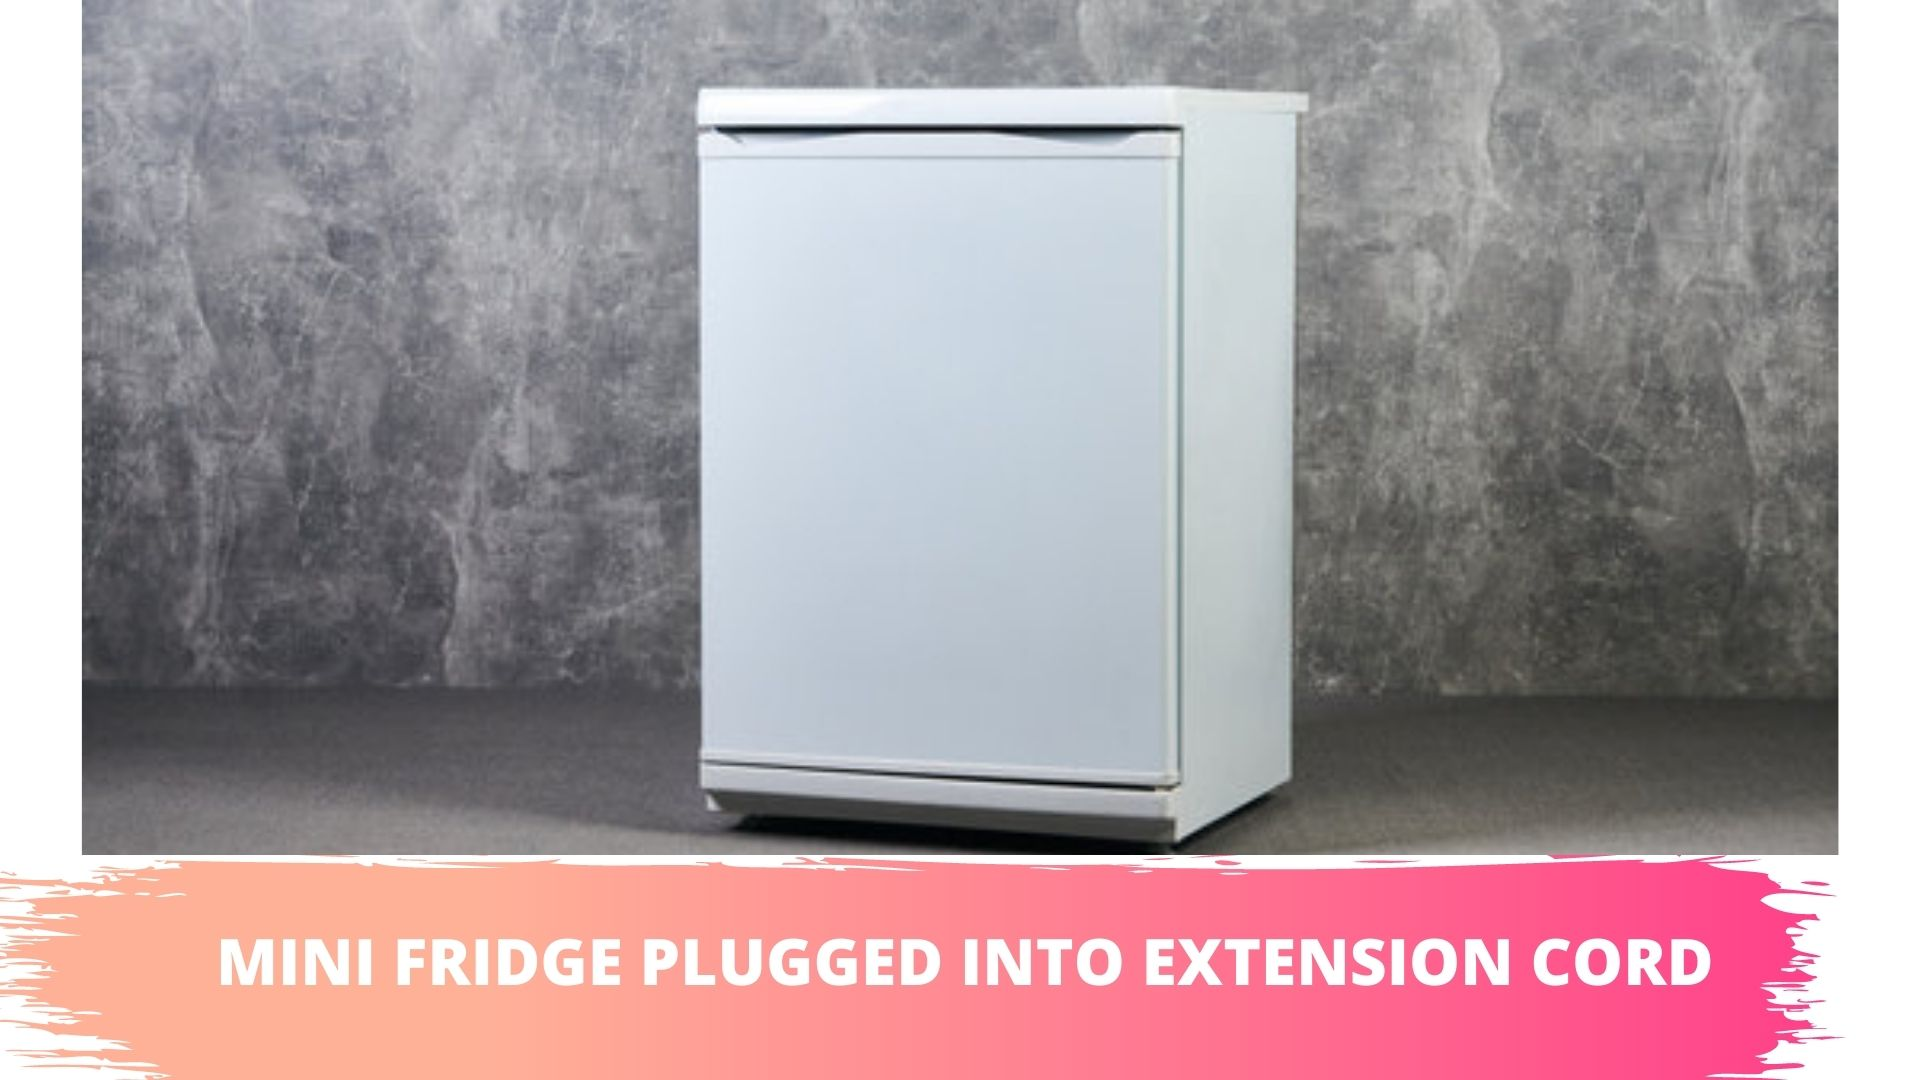 can mini refrigerator use extension cord